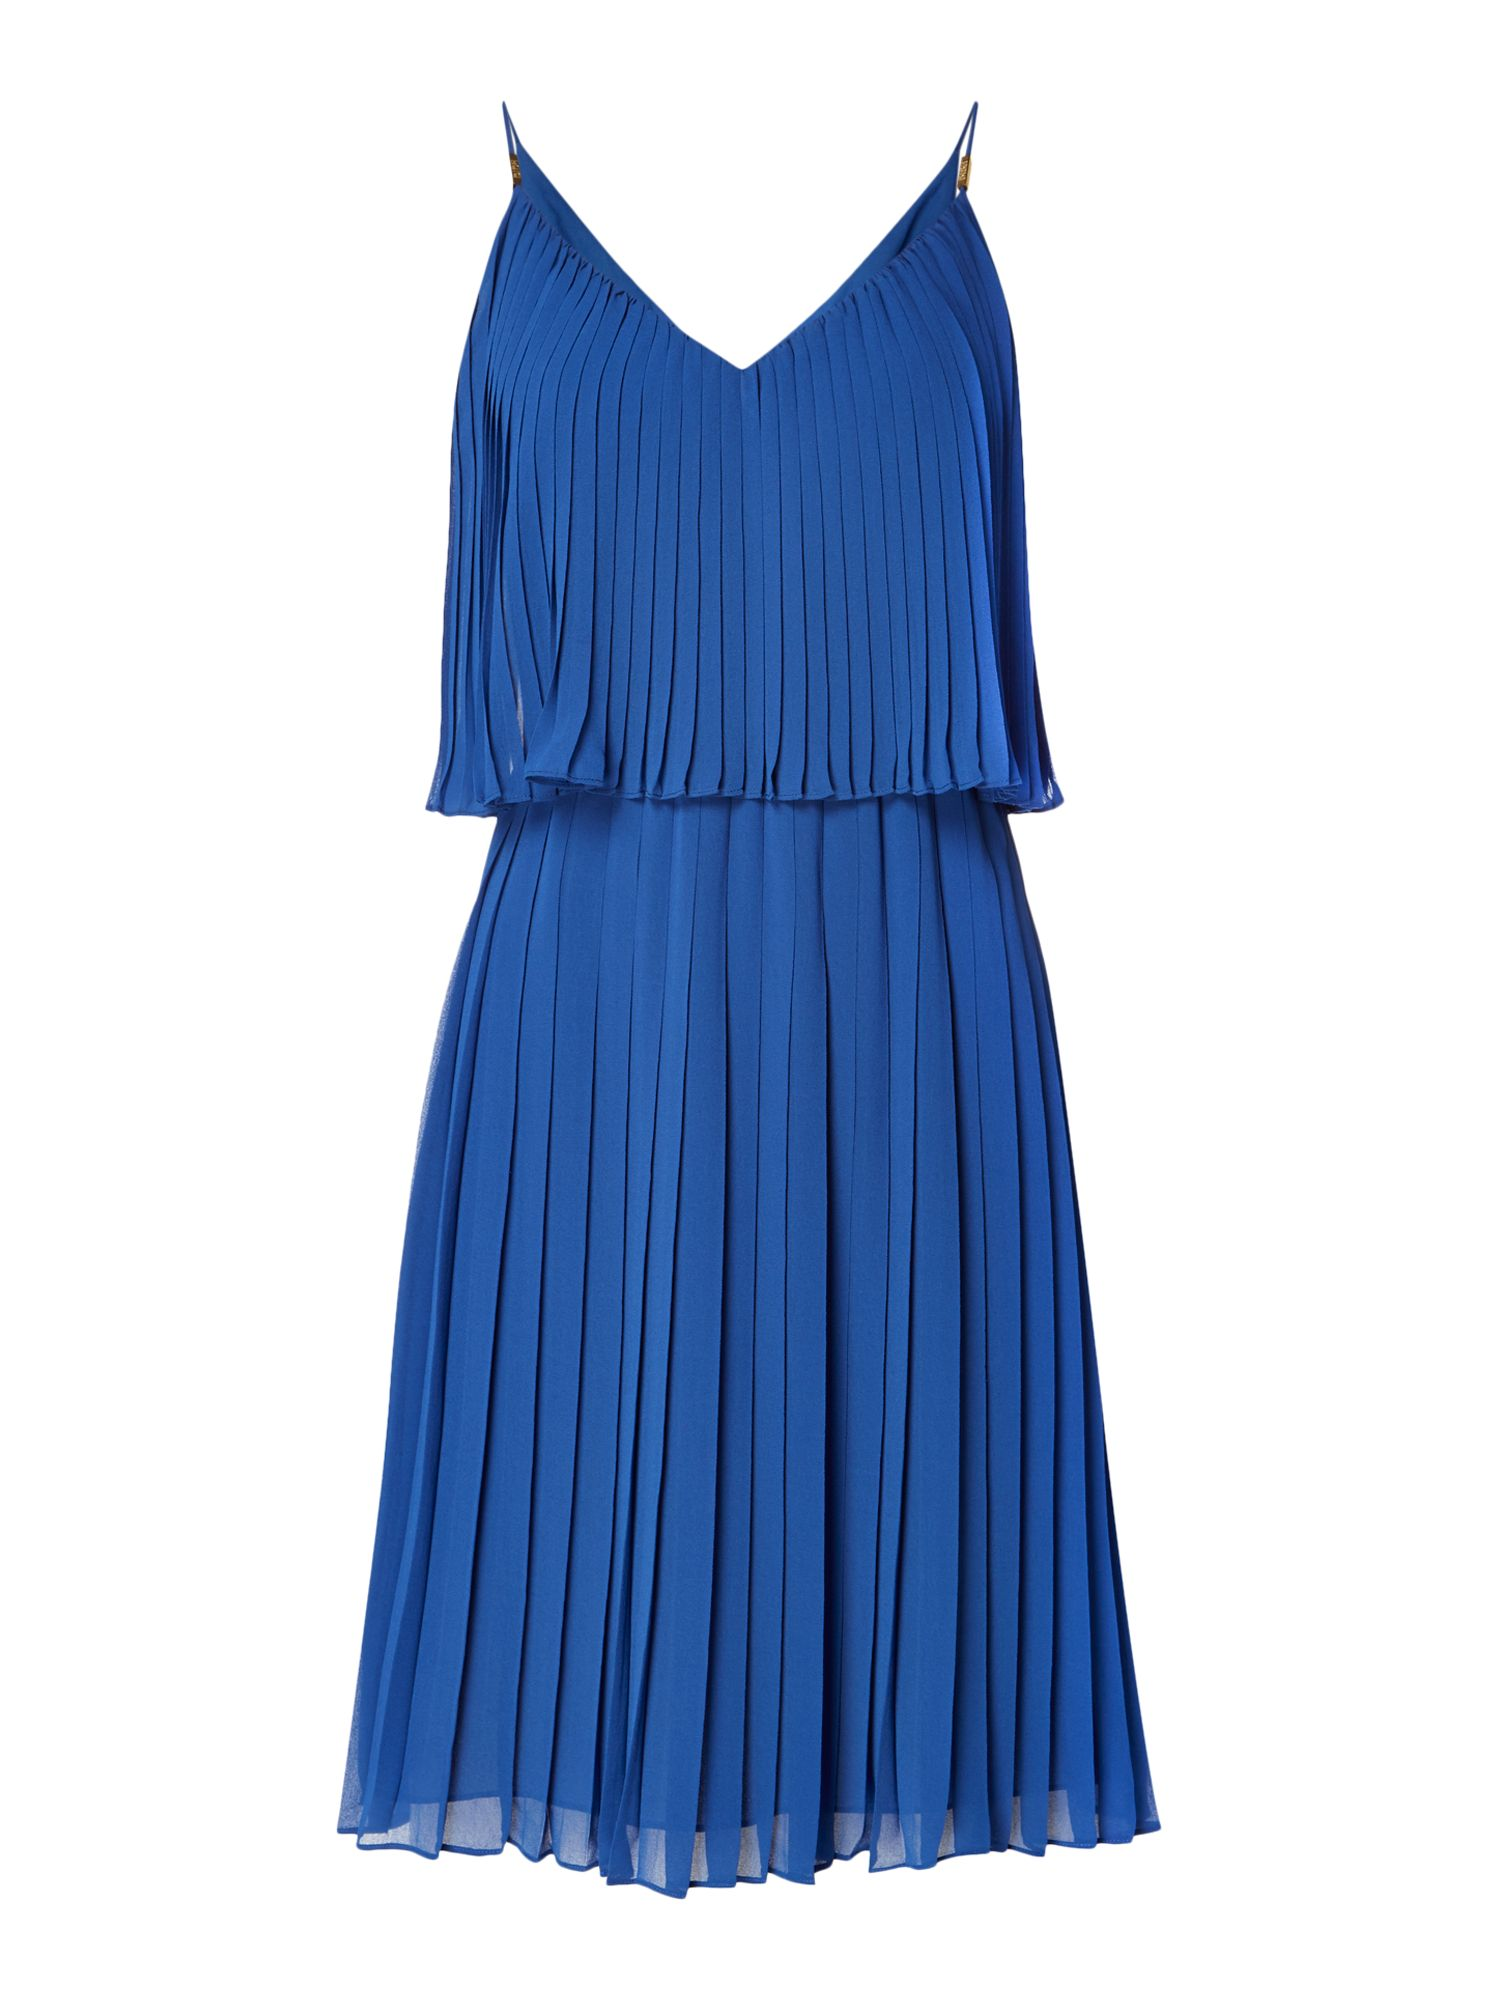 Biba Pleated layered knee length dress, Blue